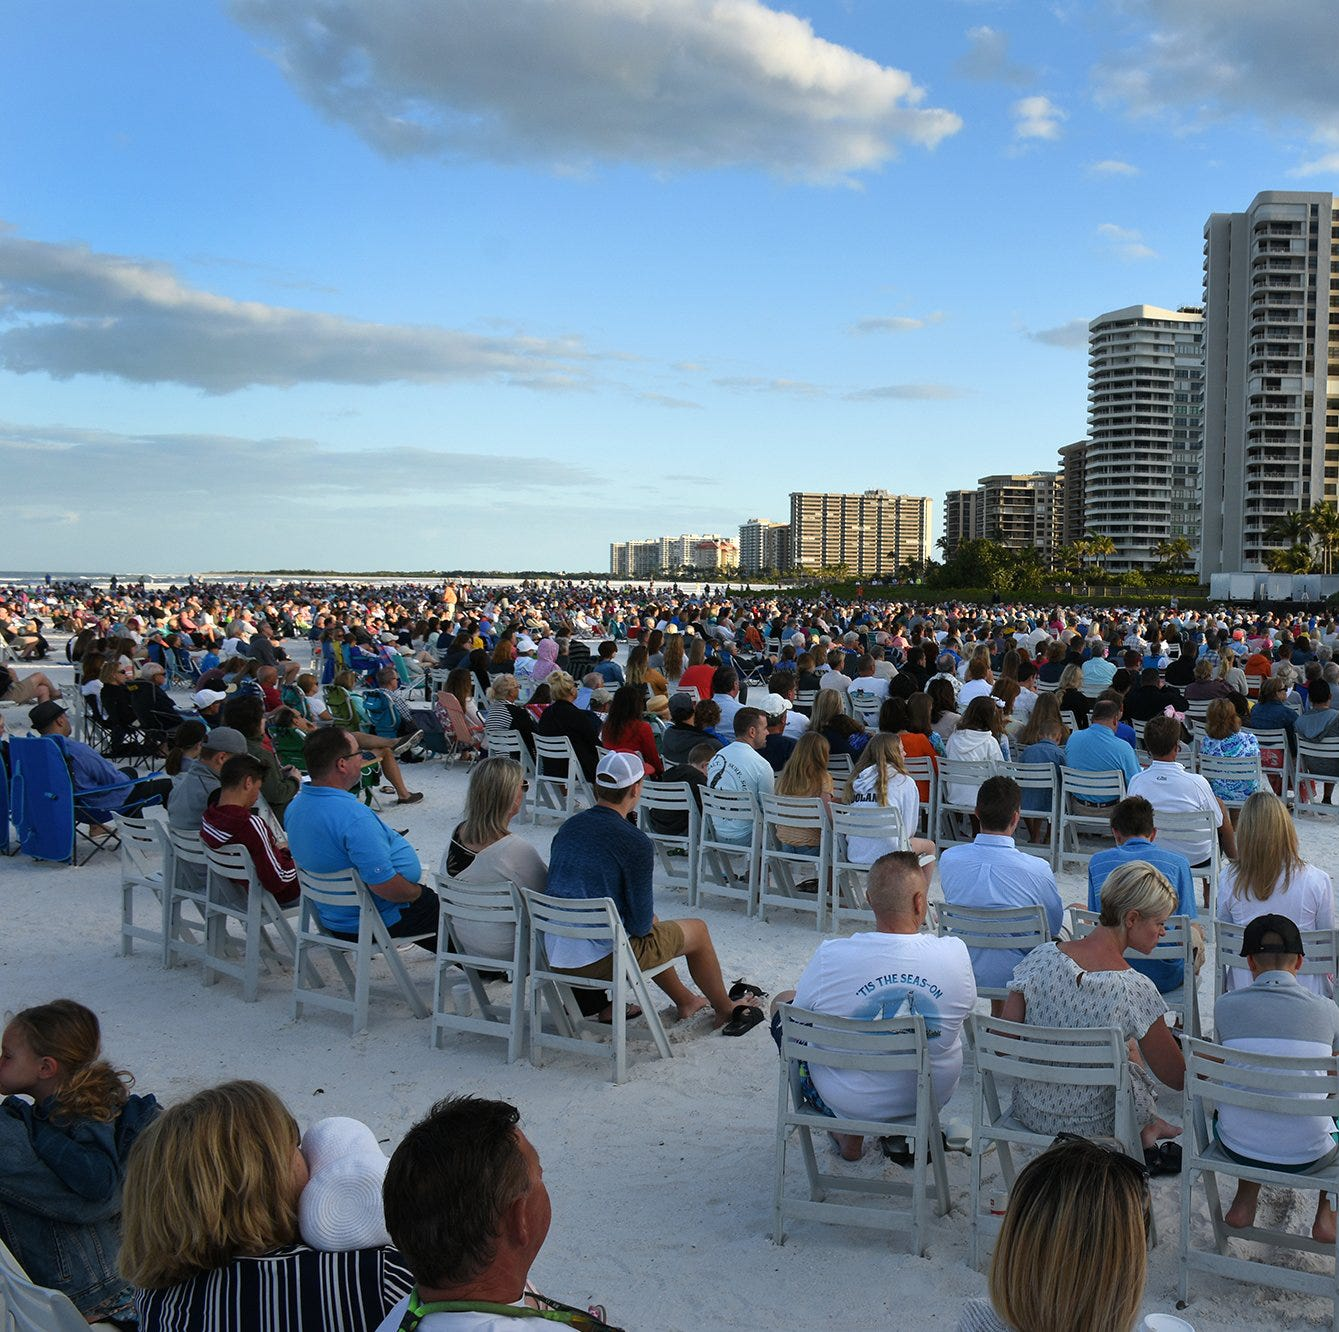 Easter on the beach: 31st Marco sunrise service attracts thousands of worshippers